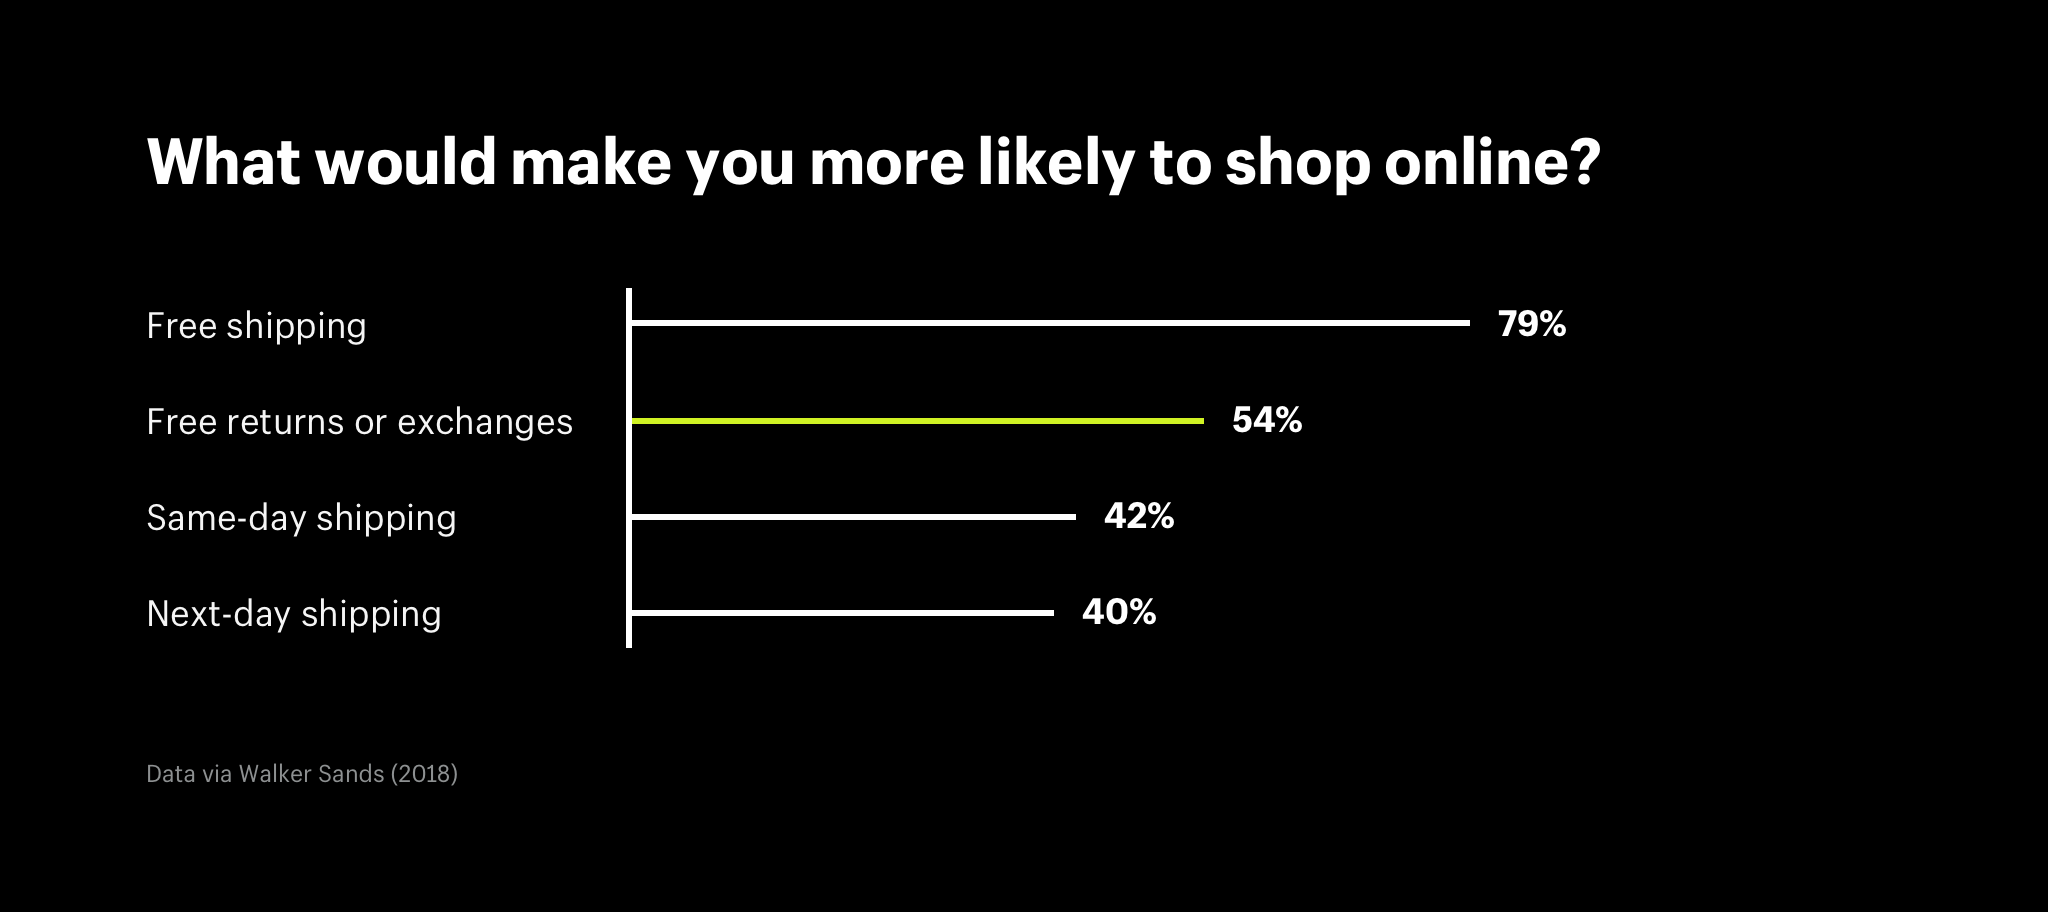 Bar chart showing that 64% of customers would be more likely to shop online if offered free returns